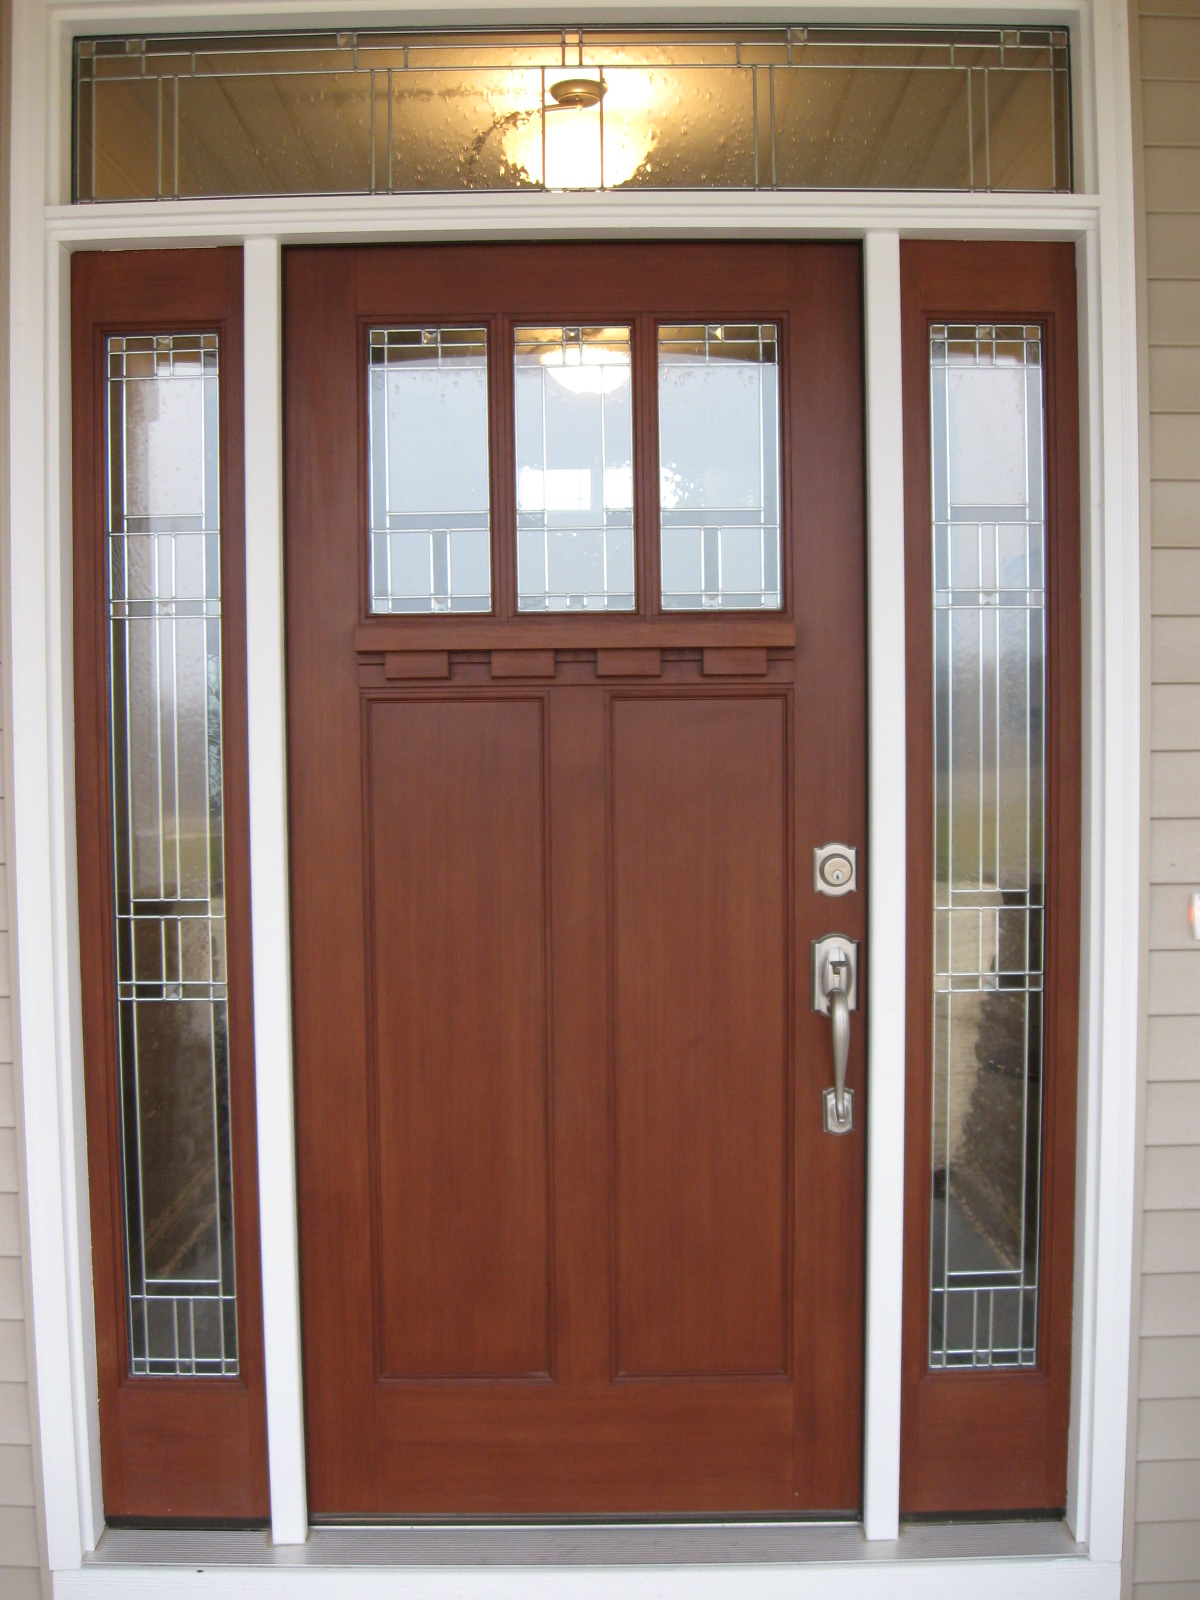 How to install a prehung door properly in your new home - How to install a prehung exterior door ...